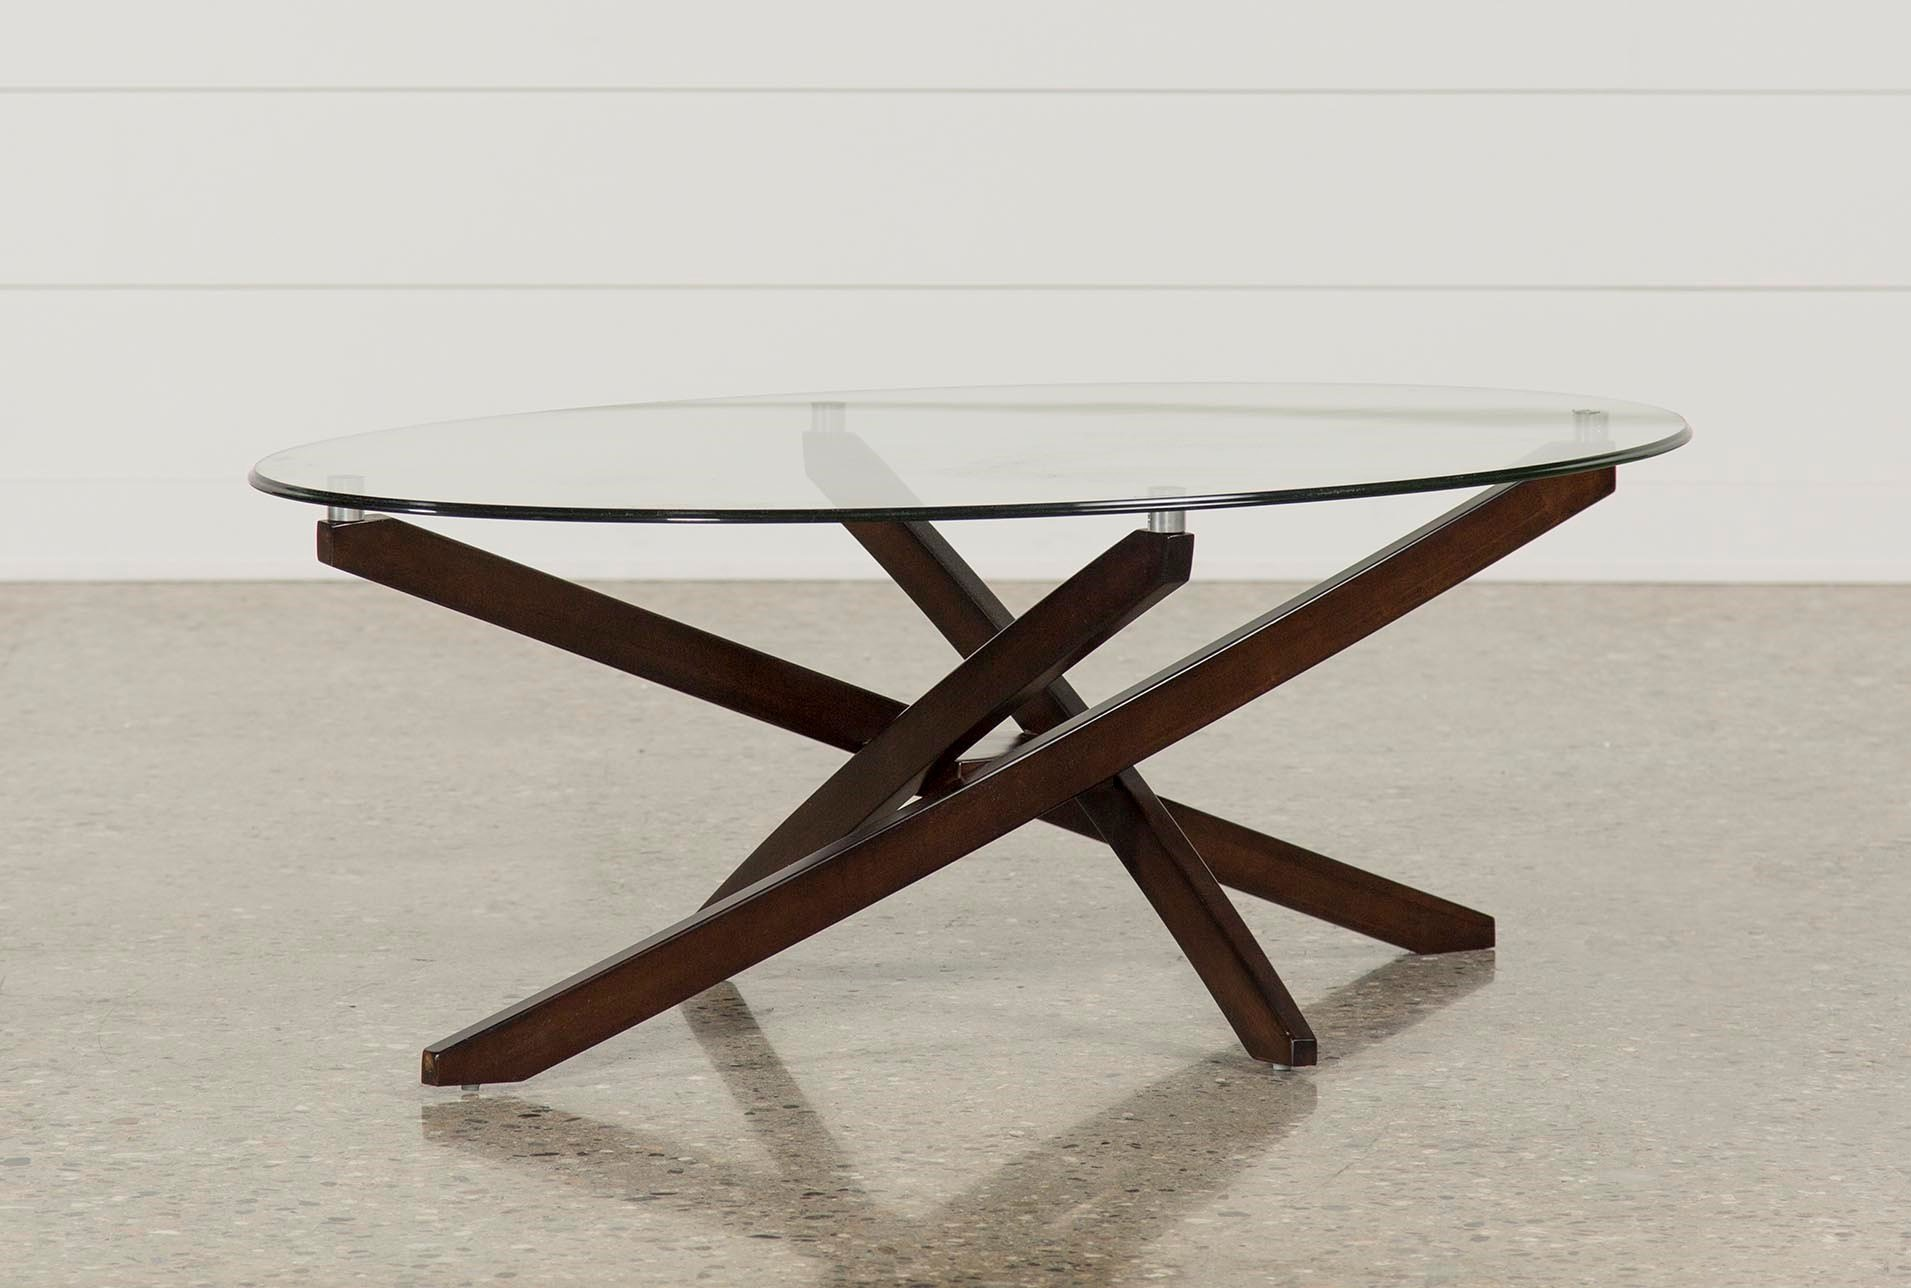 coffee tables fit your home decor living spaces wooden display accent table product reviews for kit brisbane oval long low nautical themed chandelier trellis legs and end small